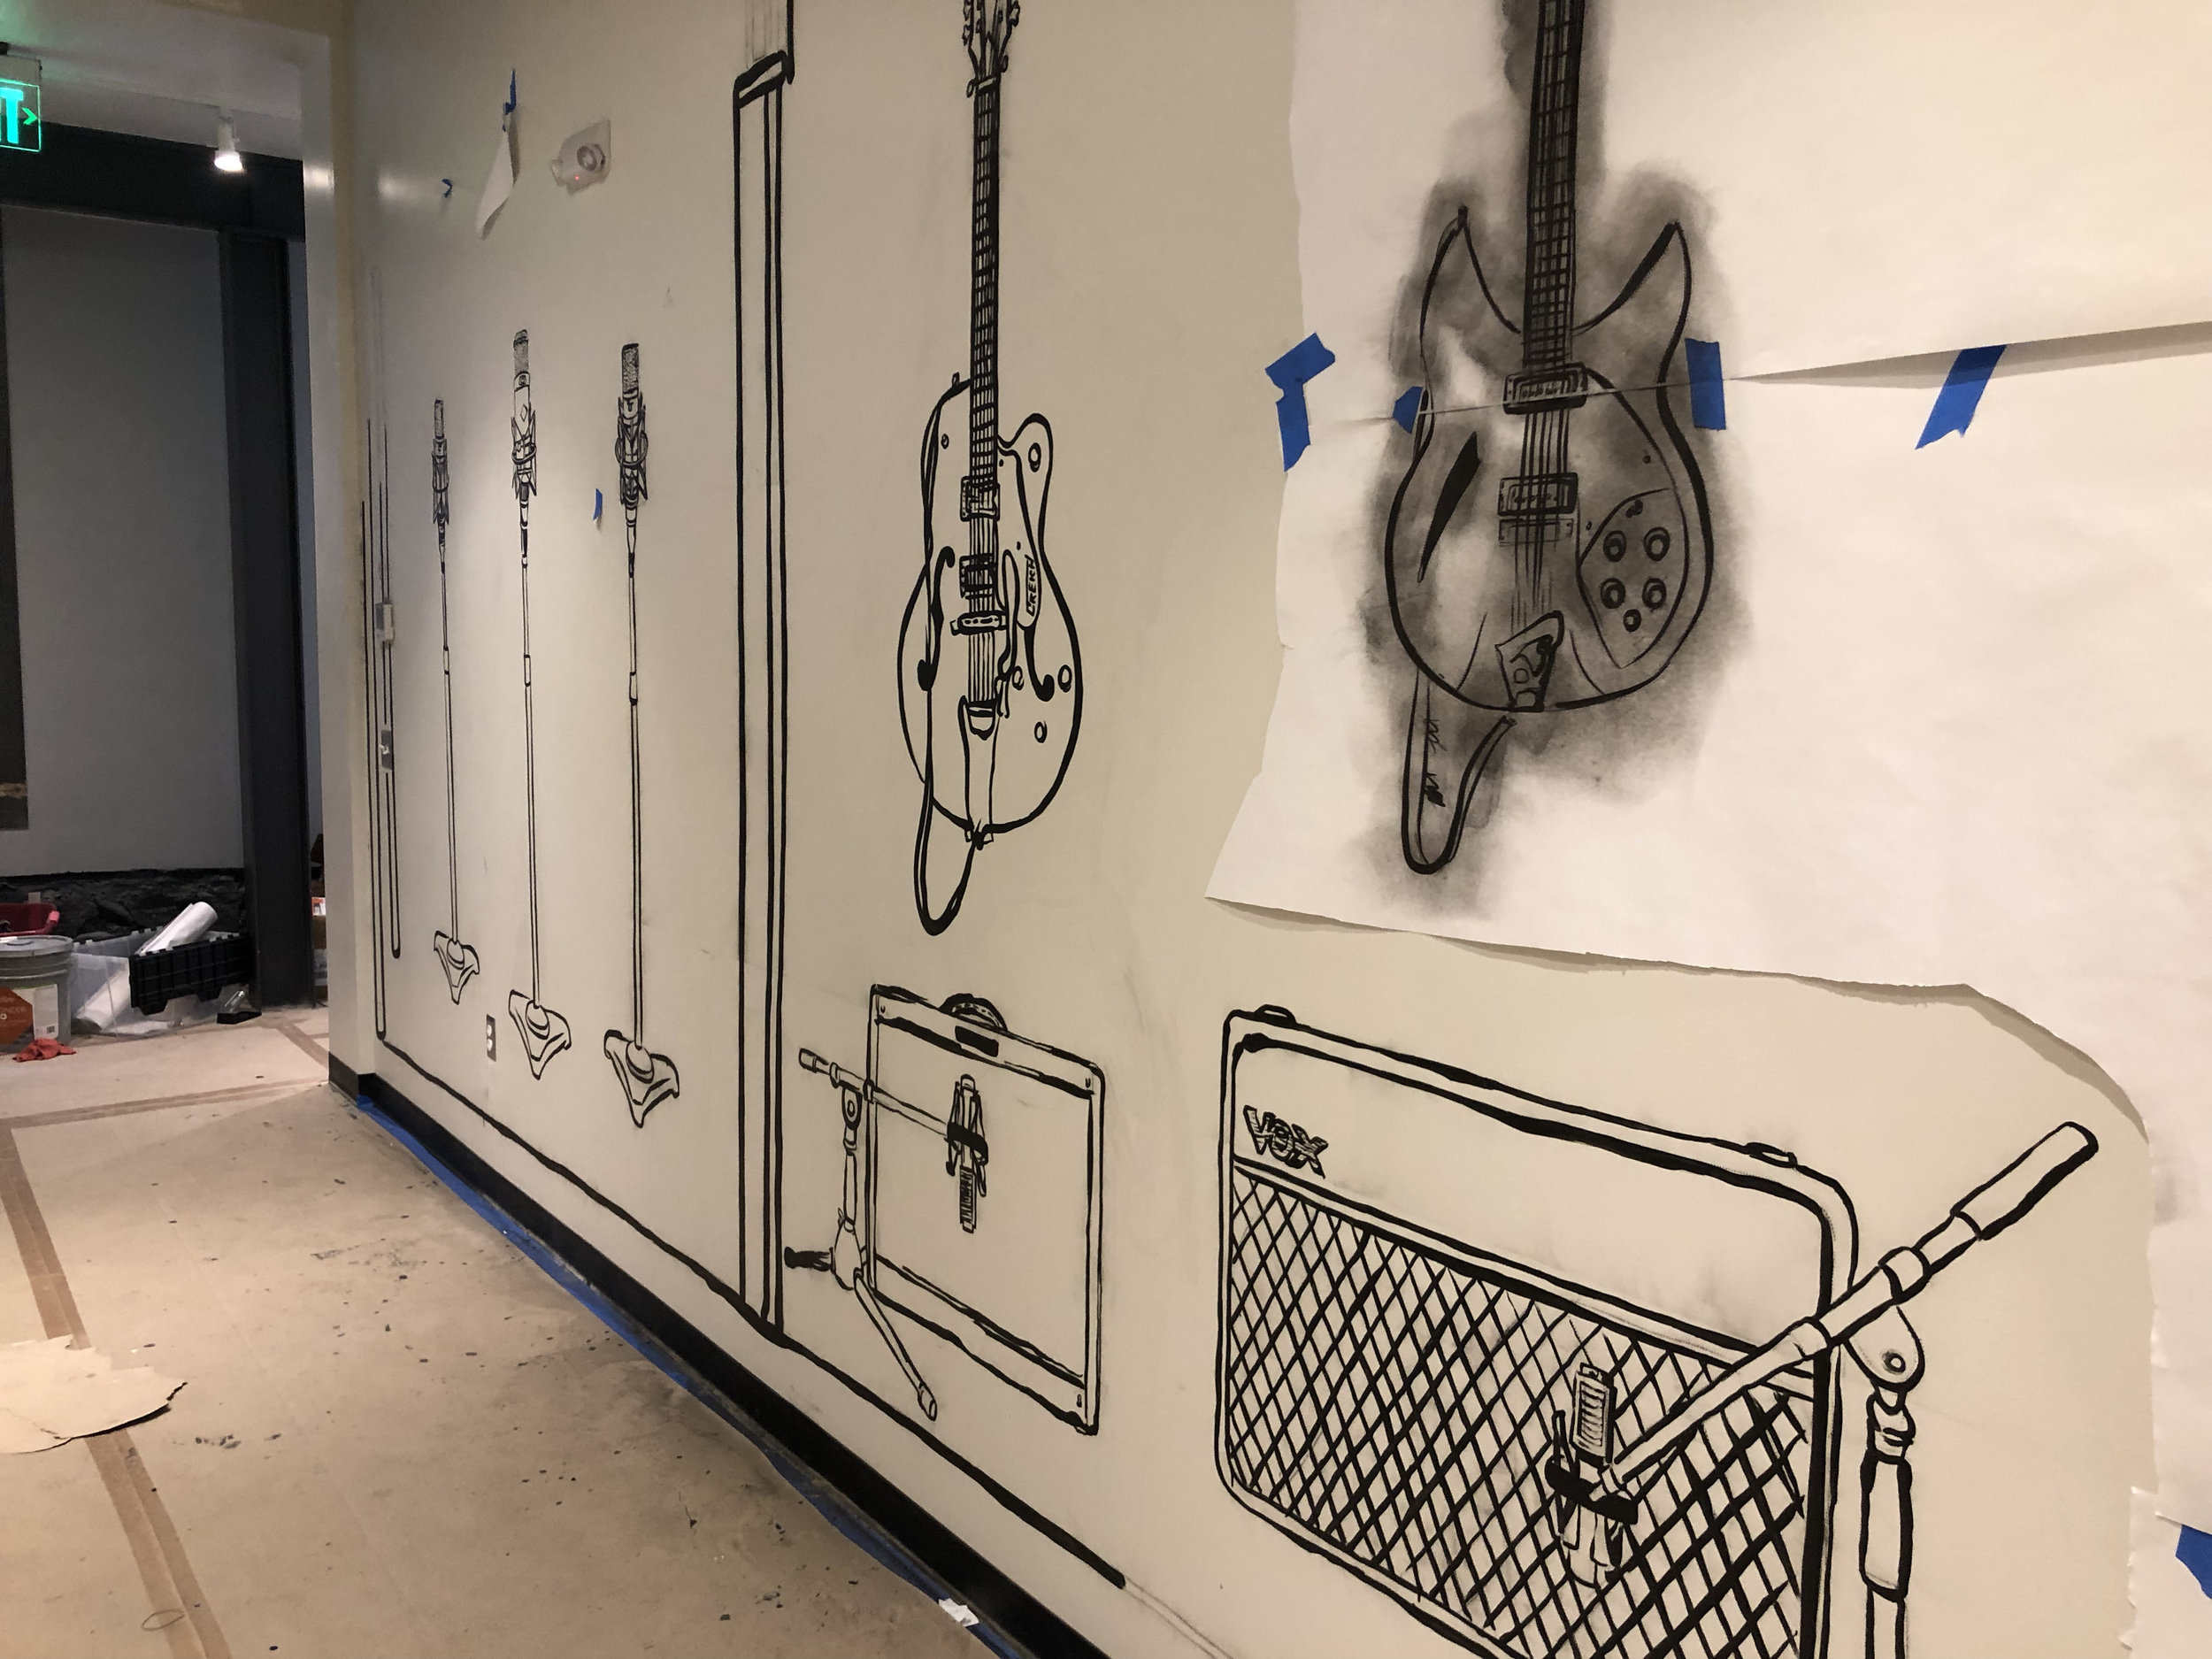 The final mural is basically an elevation of the entirety of Studio 2, so to the left is the small booth, where you see the three mics on stands, then the wall, then the tracking room where the guitars and amps are pictured, and then all the way down the wall to the window and the control room, everything lifesize and laid out where it is behind the wall.